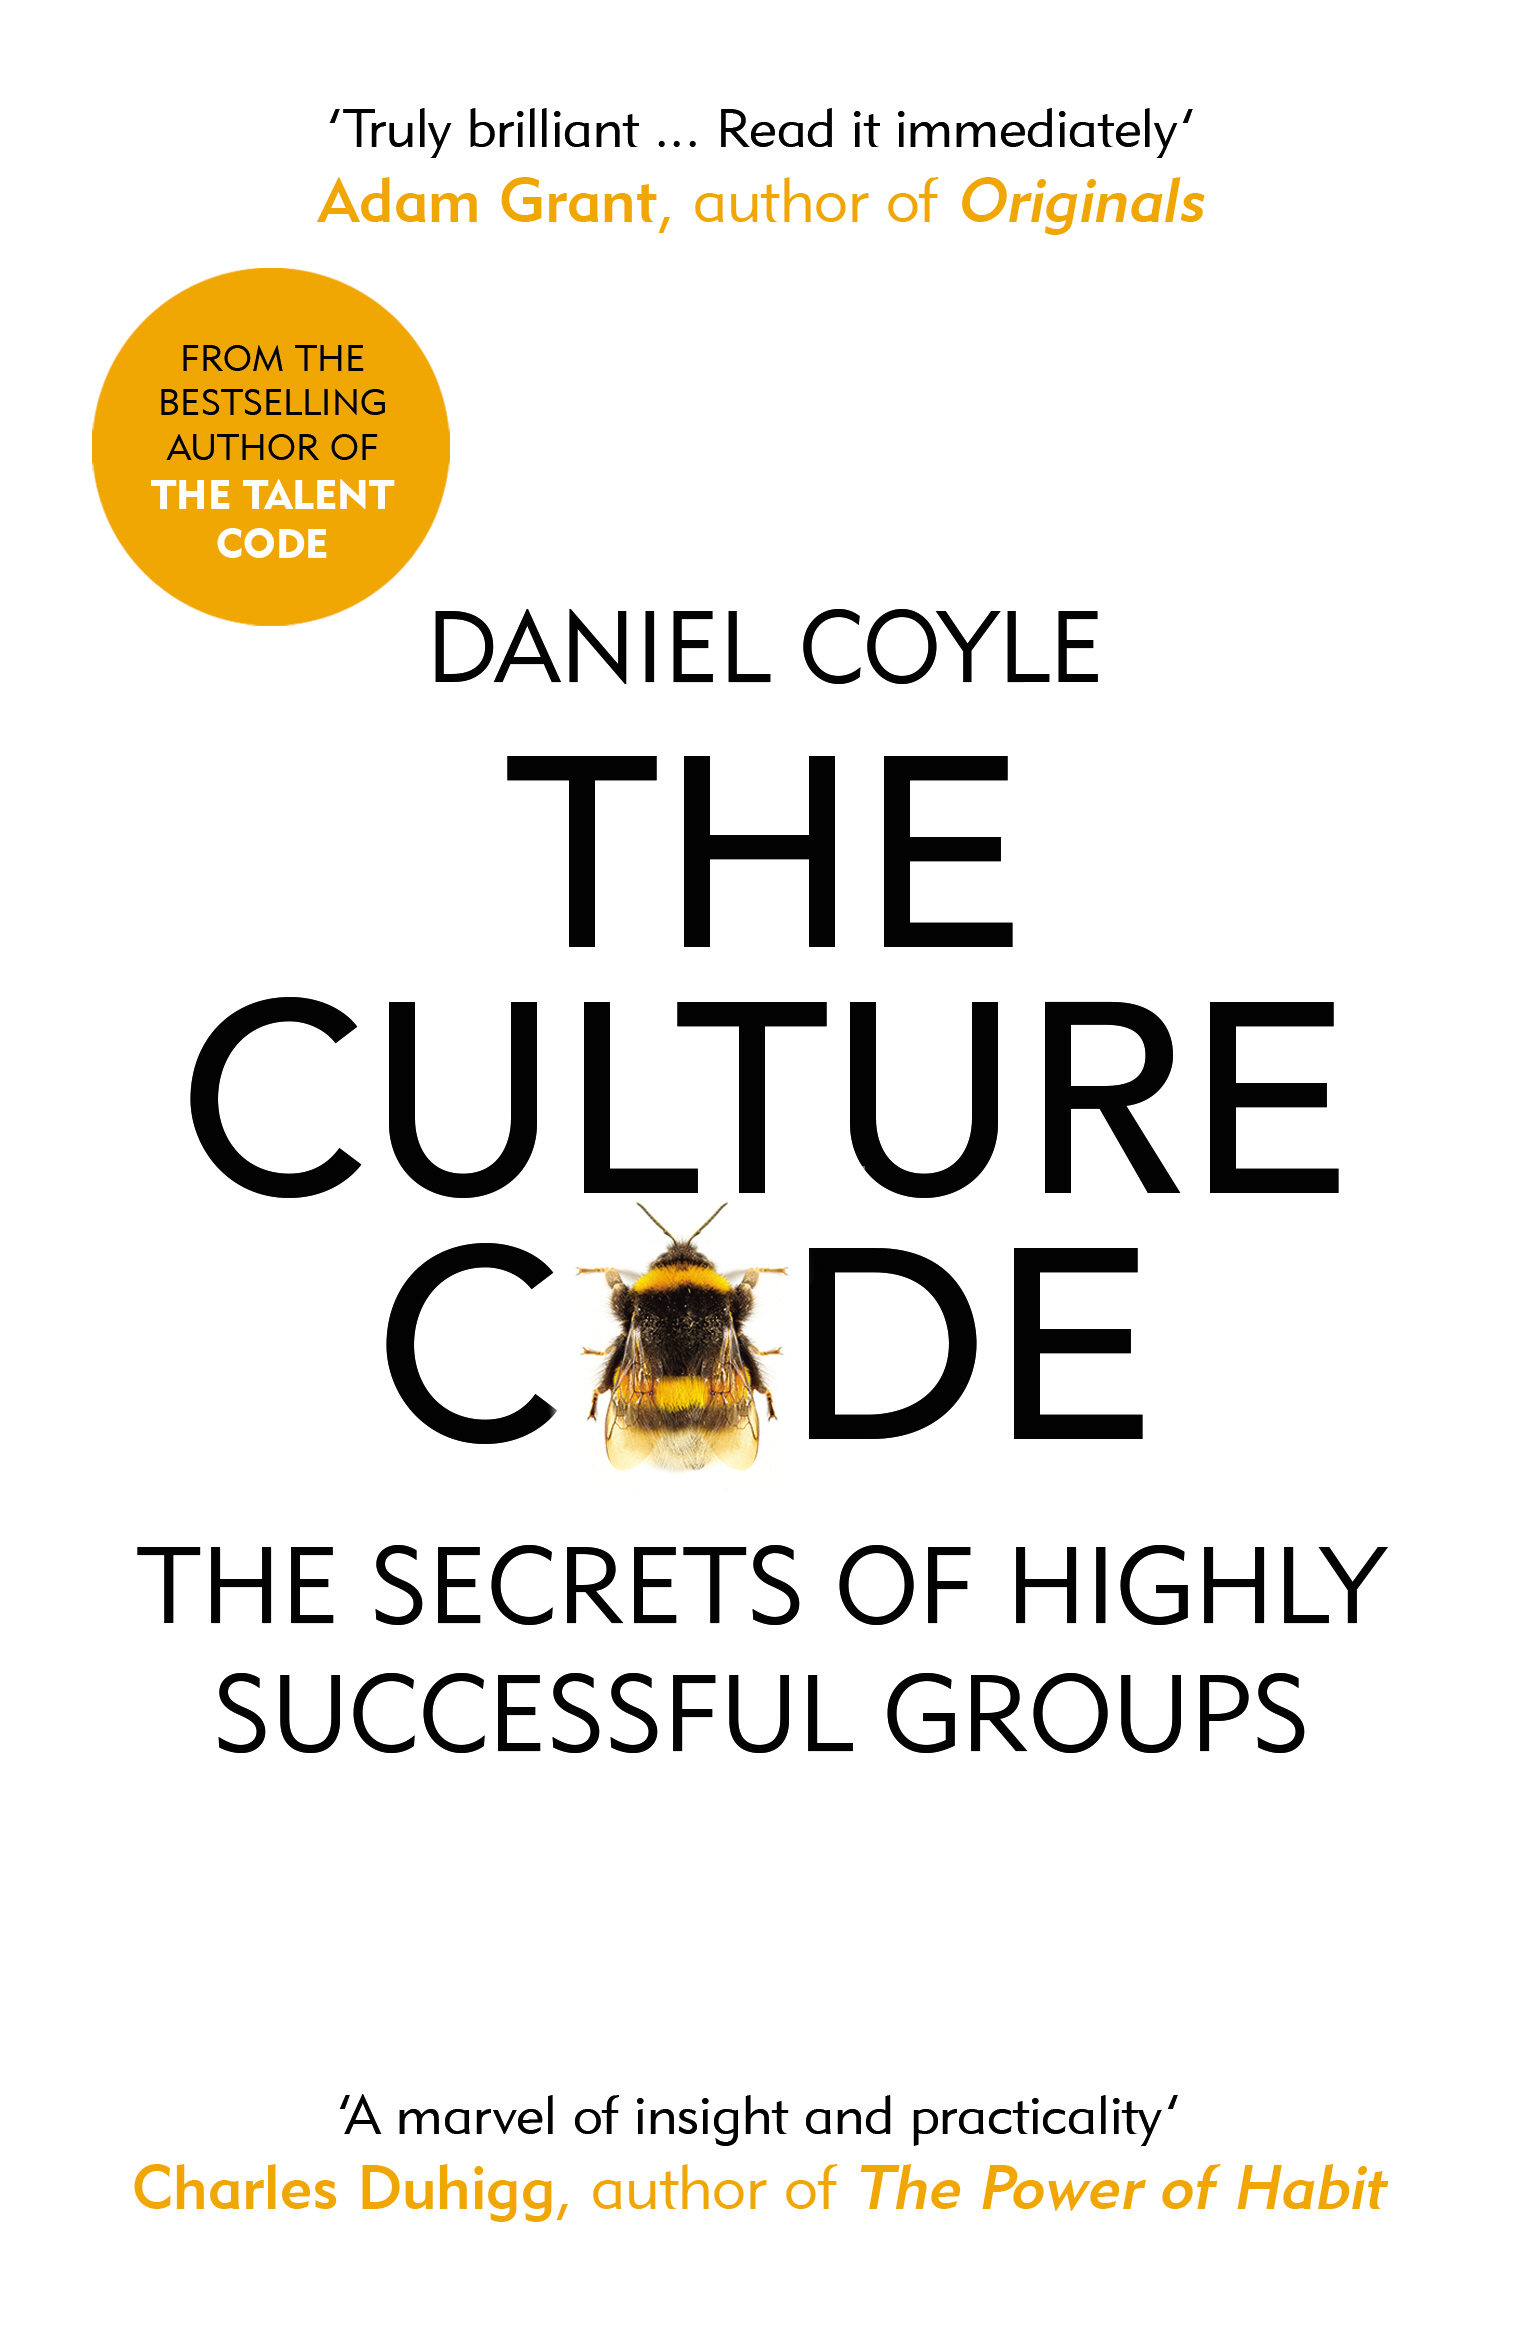 Download Ebook The Culture Code by Daniel Coyle Pdf